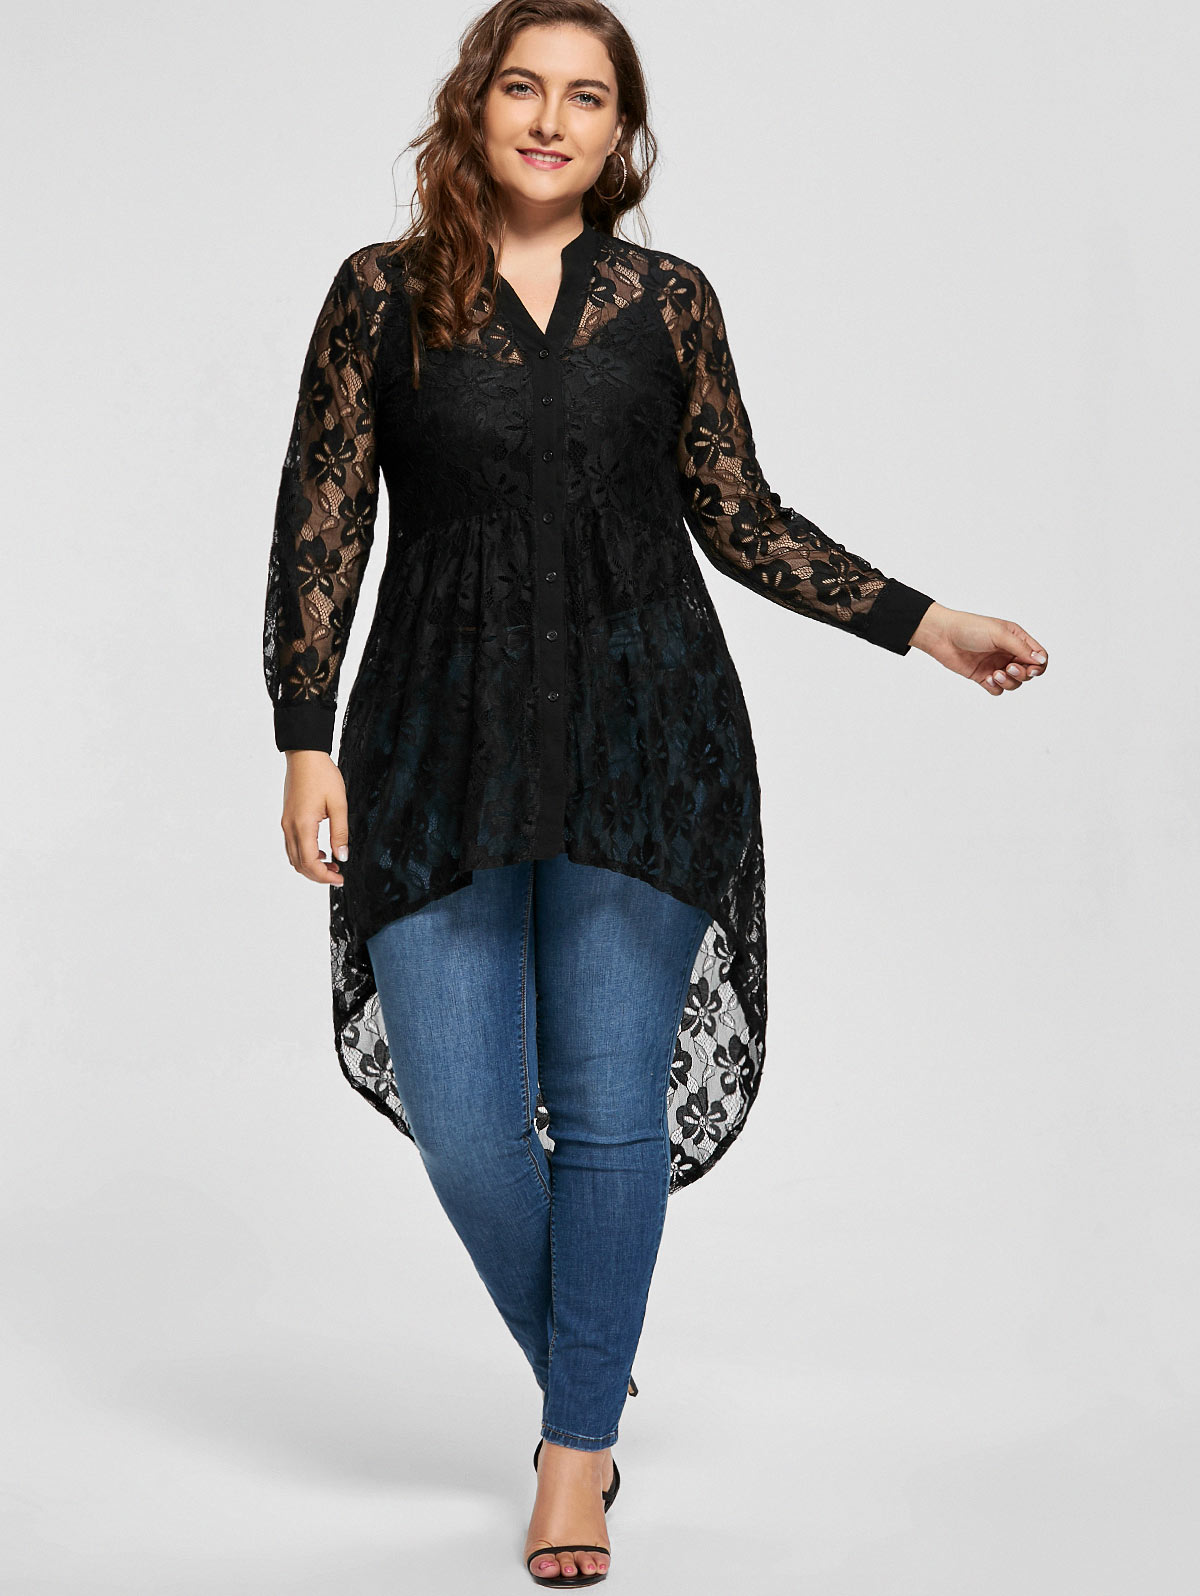 Wipalo Women Plus Size Blouse Autumn peplum Long Sleeve High Low Lace Shirts Tunic Through Button Up Women Tops and Blouse 5XL(China)